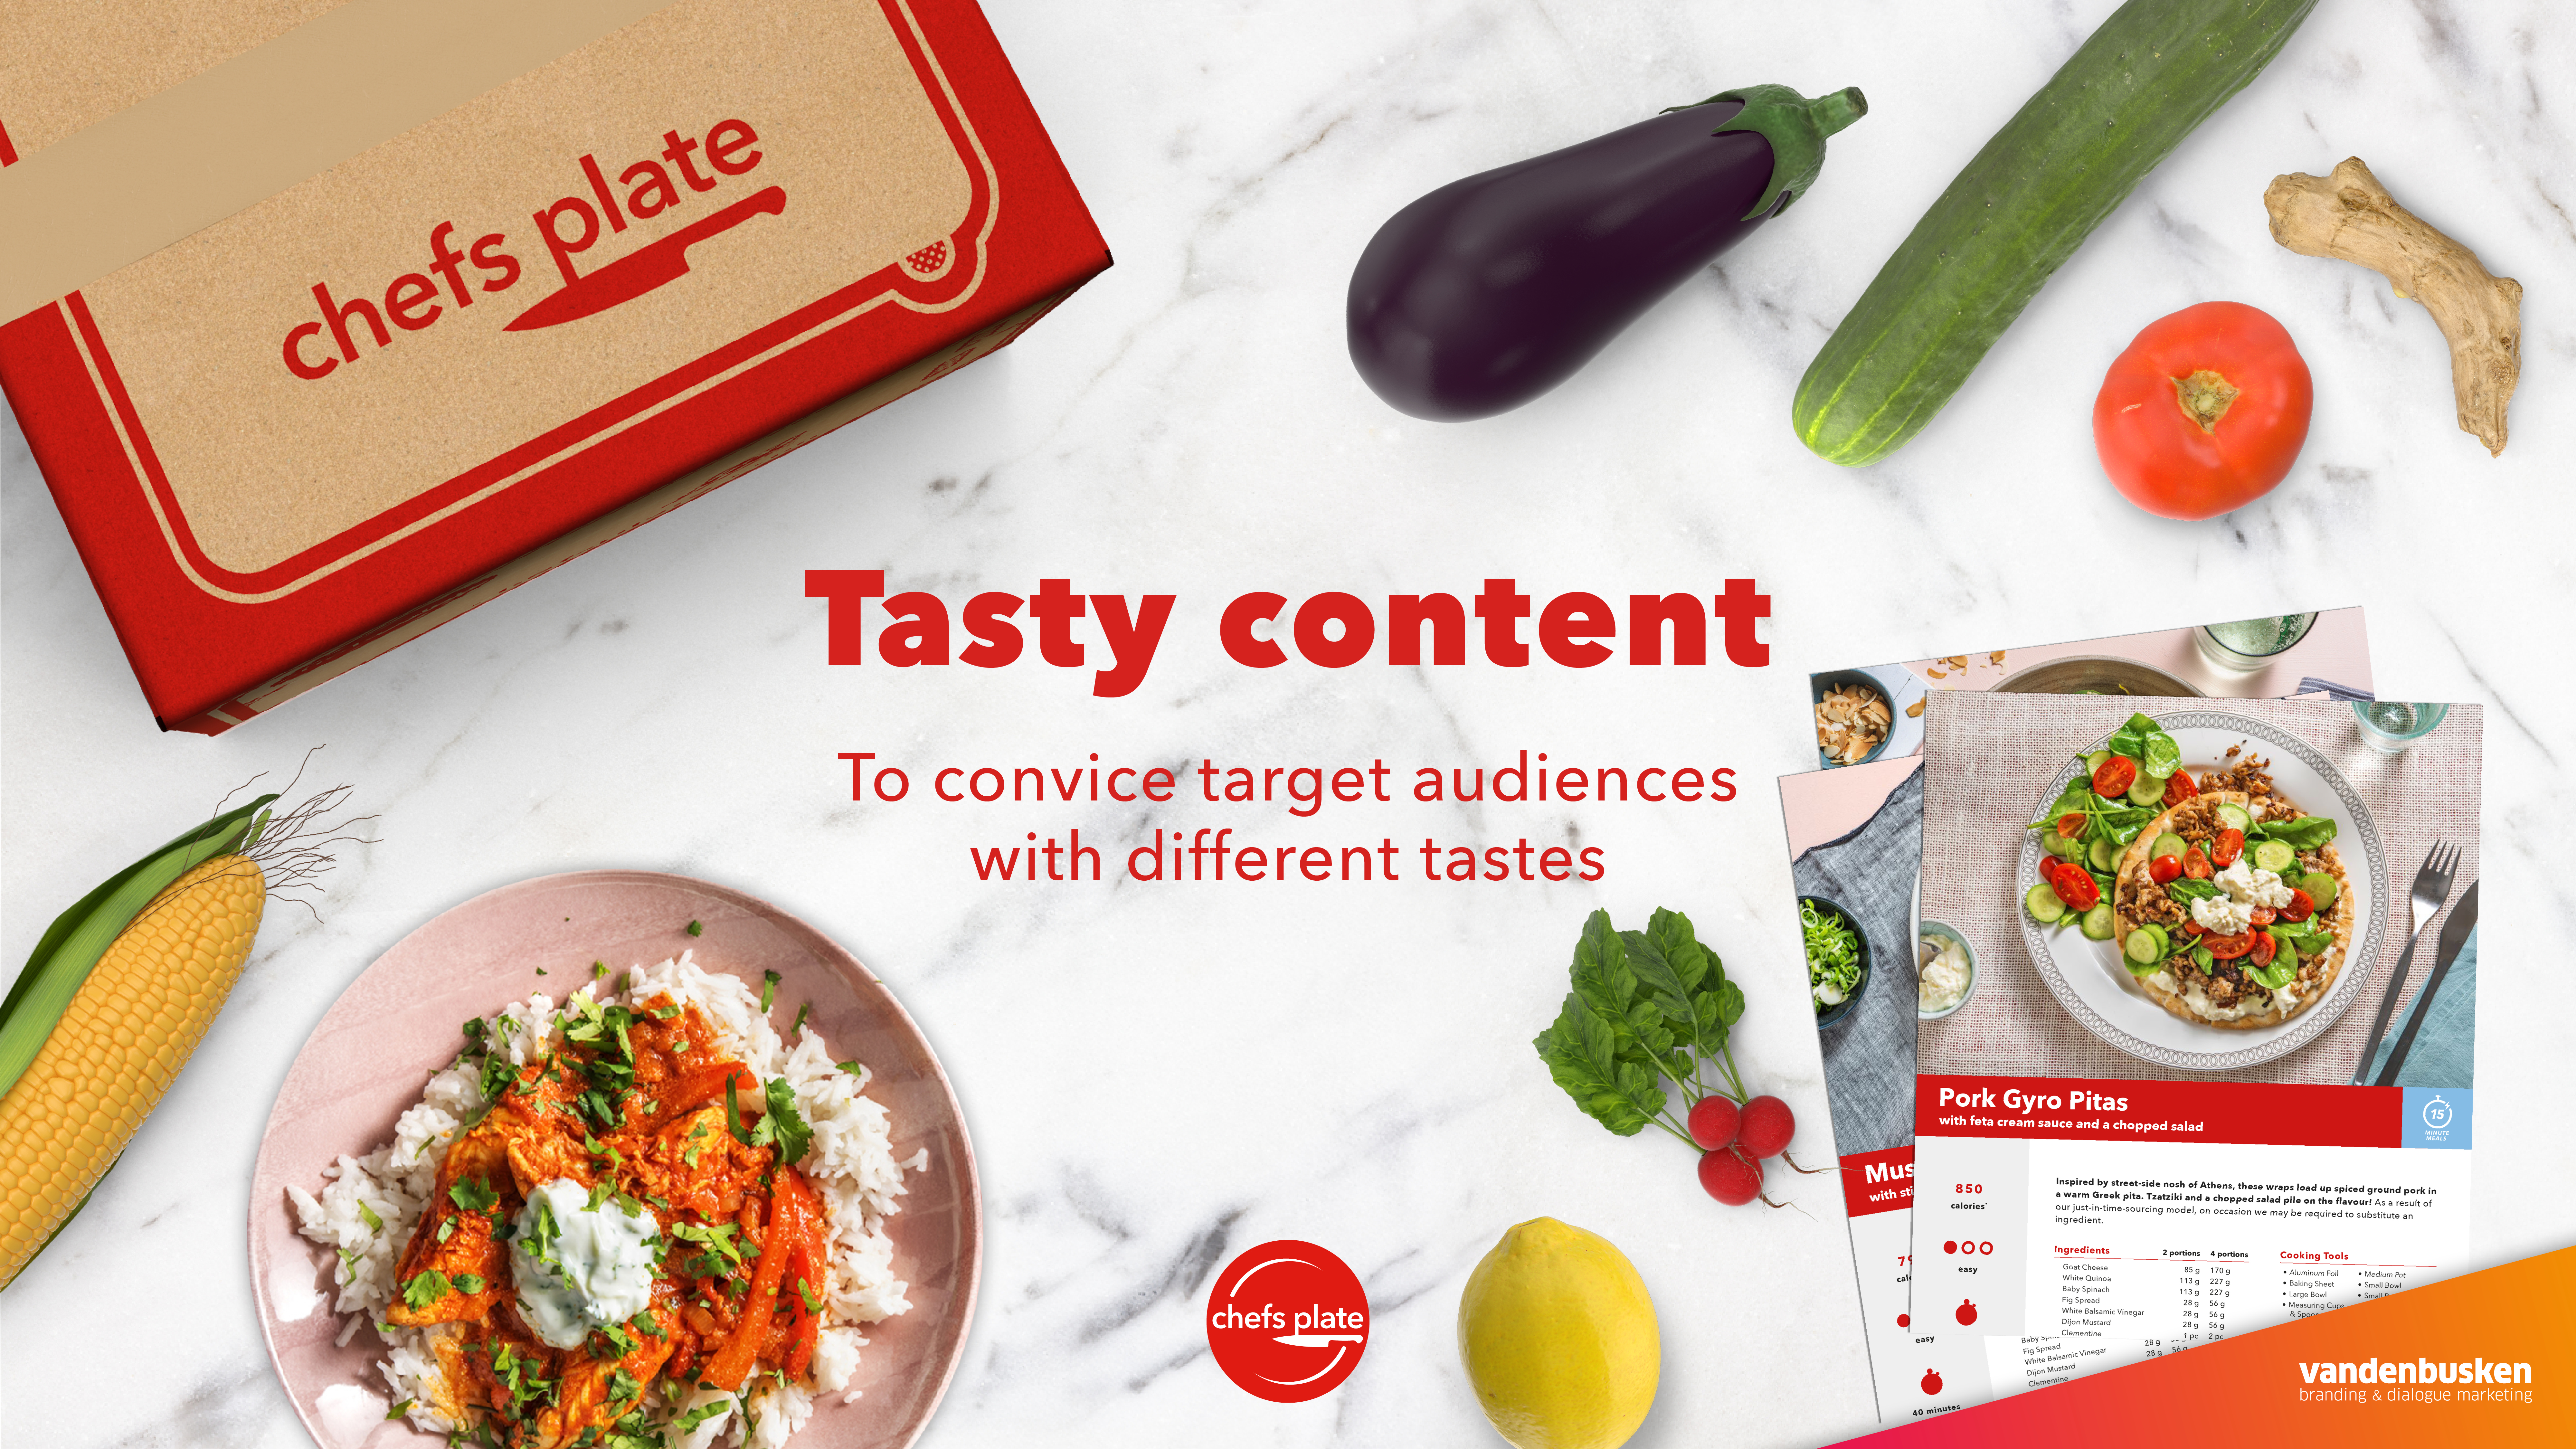 Tasty content to convince target audiences with different tastes